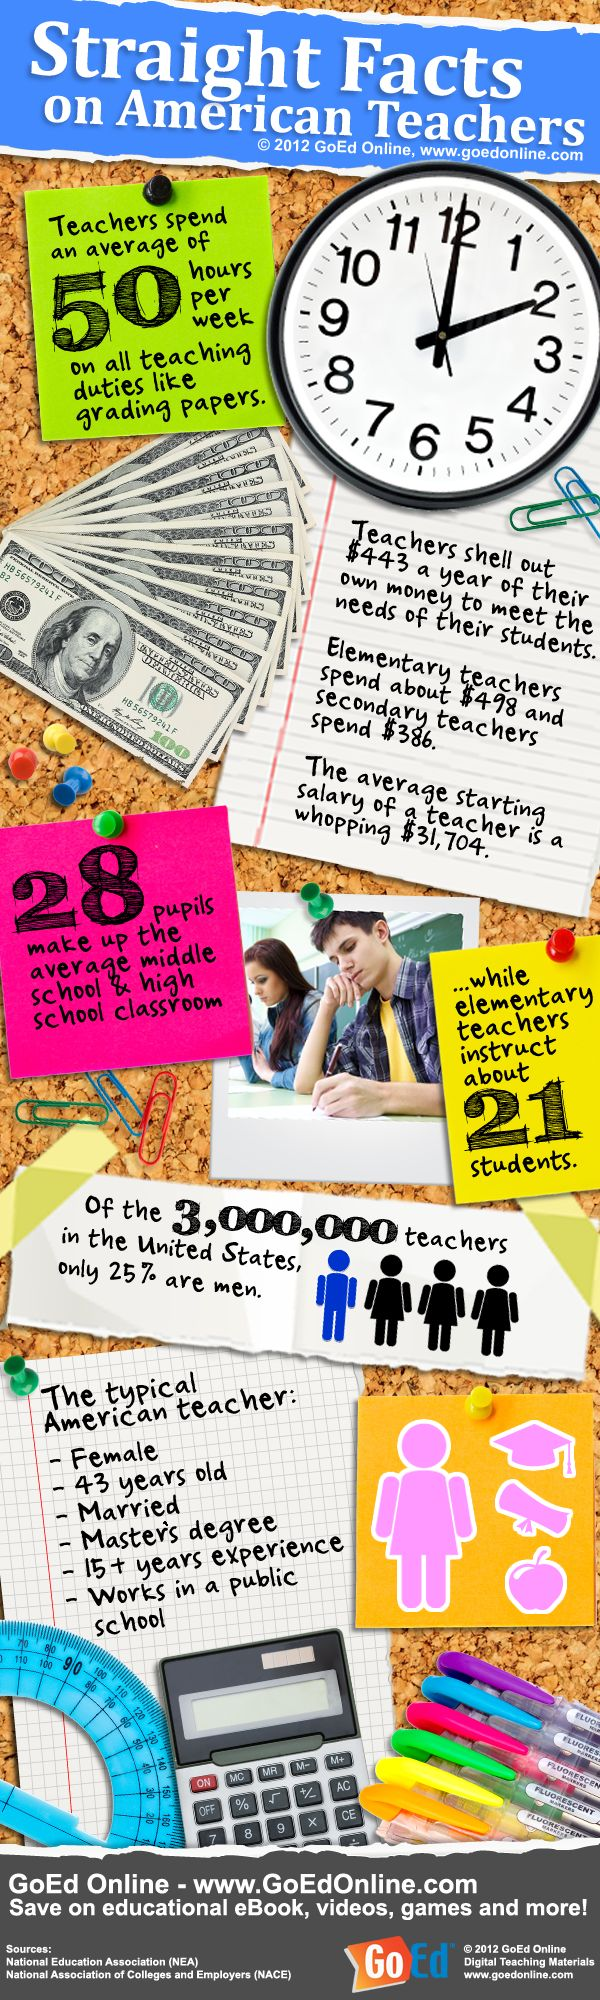 Studies prove that a great teacher can impart a year and a half's worth of learning to a student in one year. Good teaching over a sustained period can [help students] overcome the disadvantages of poverty. 77 percent of U.S. adults feel teaching is among the most under-appreciated professions in the U.S. 76 percent agree that many of the smartest people in society don't go into teaching because being a teacher doesn't pay enough.